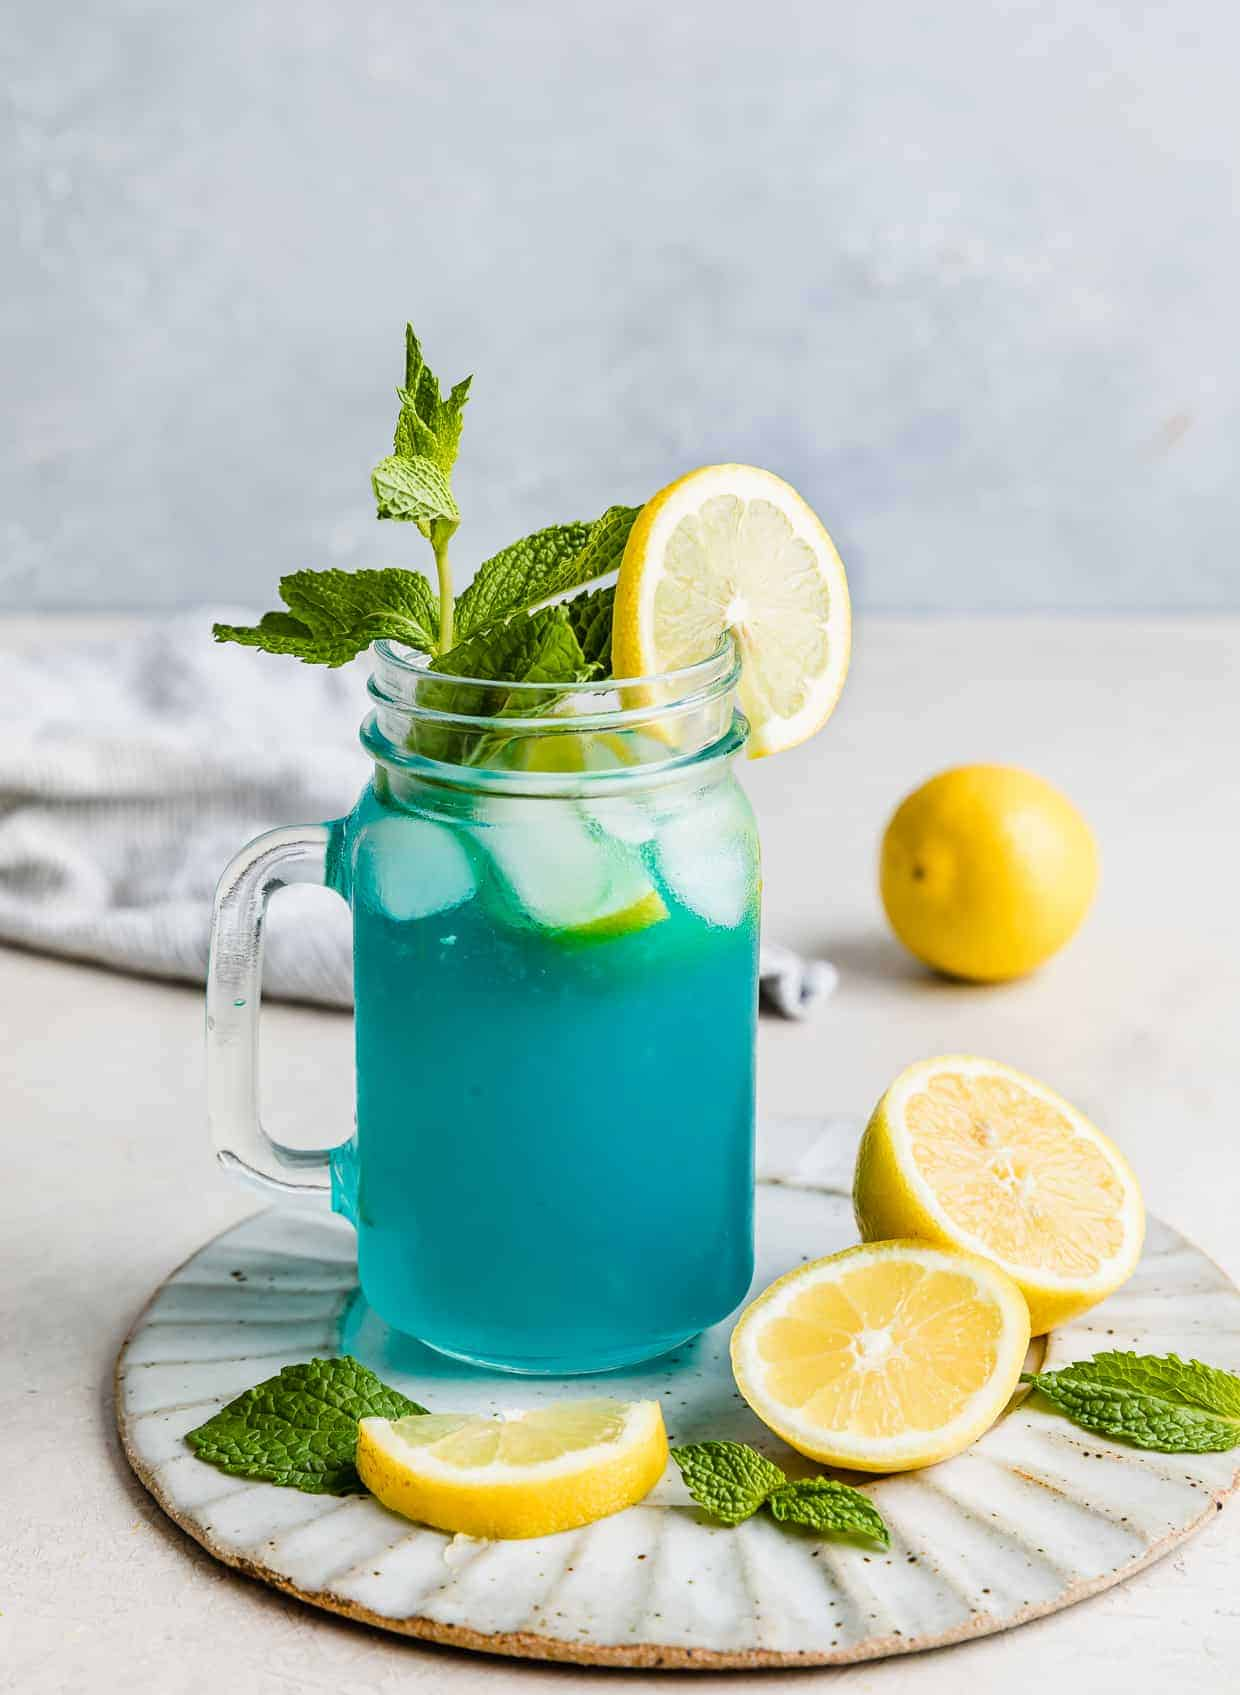 Blue Raspberry Lemonade in a glass jar garnished with a sprig of mint.